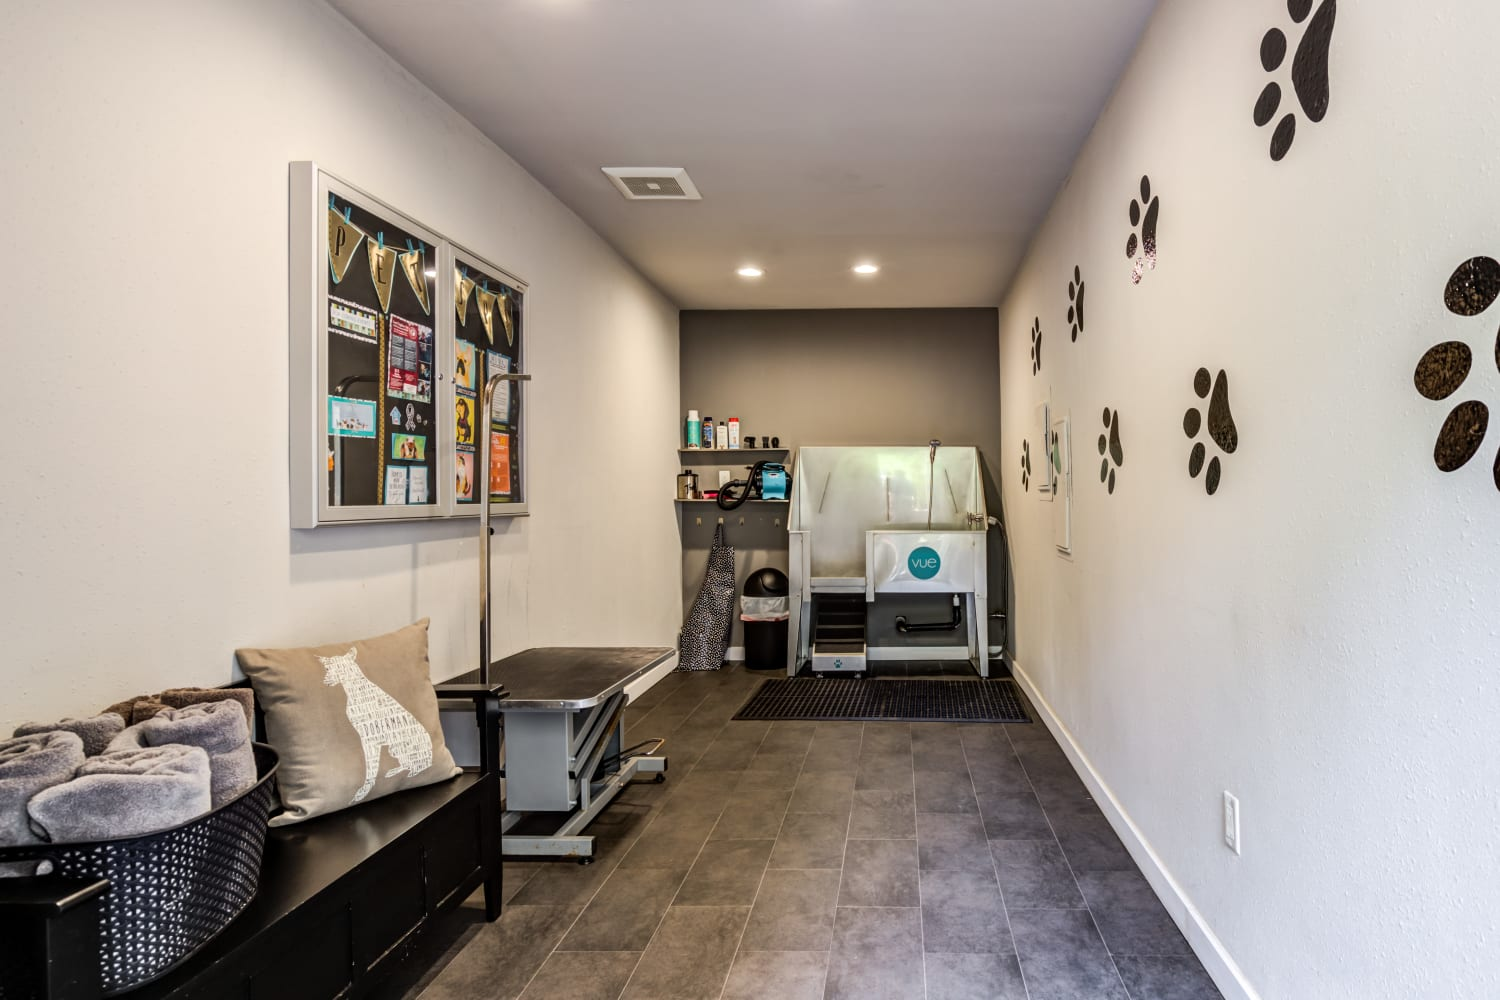 Pet spa at Vue Kirkland Apartments in Kirkland, Washington